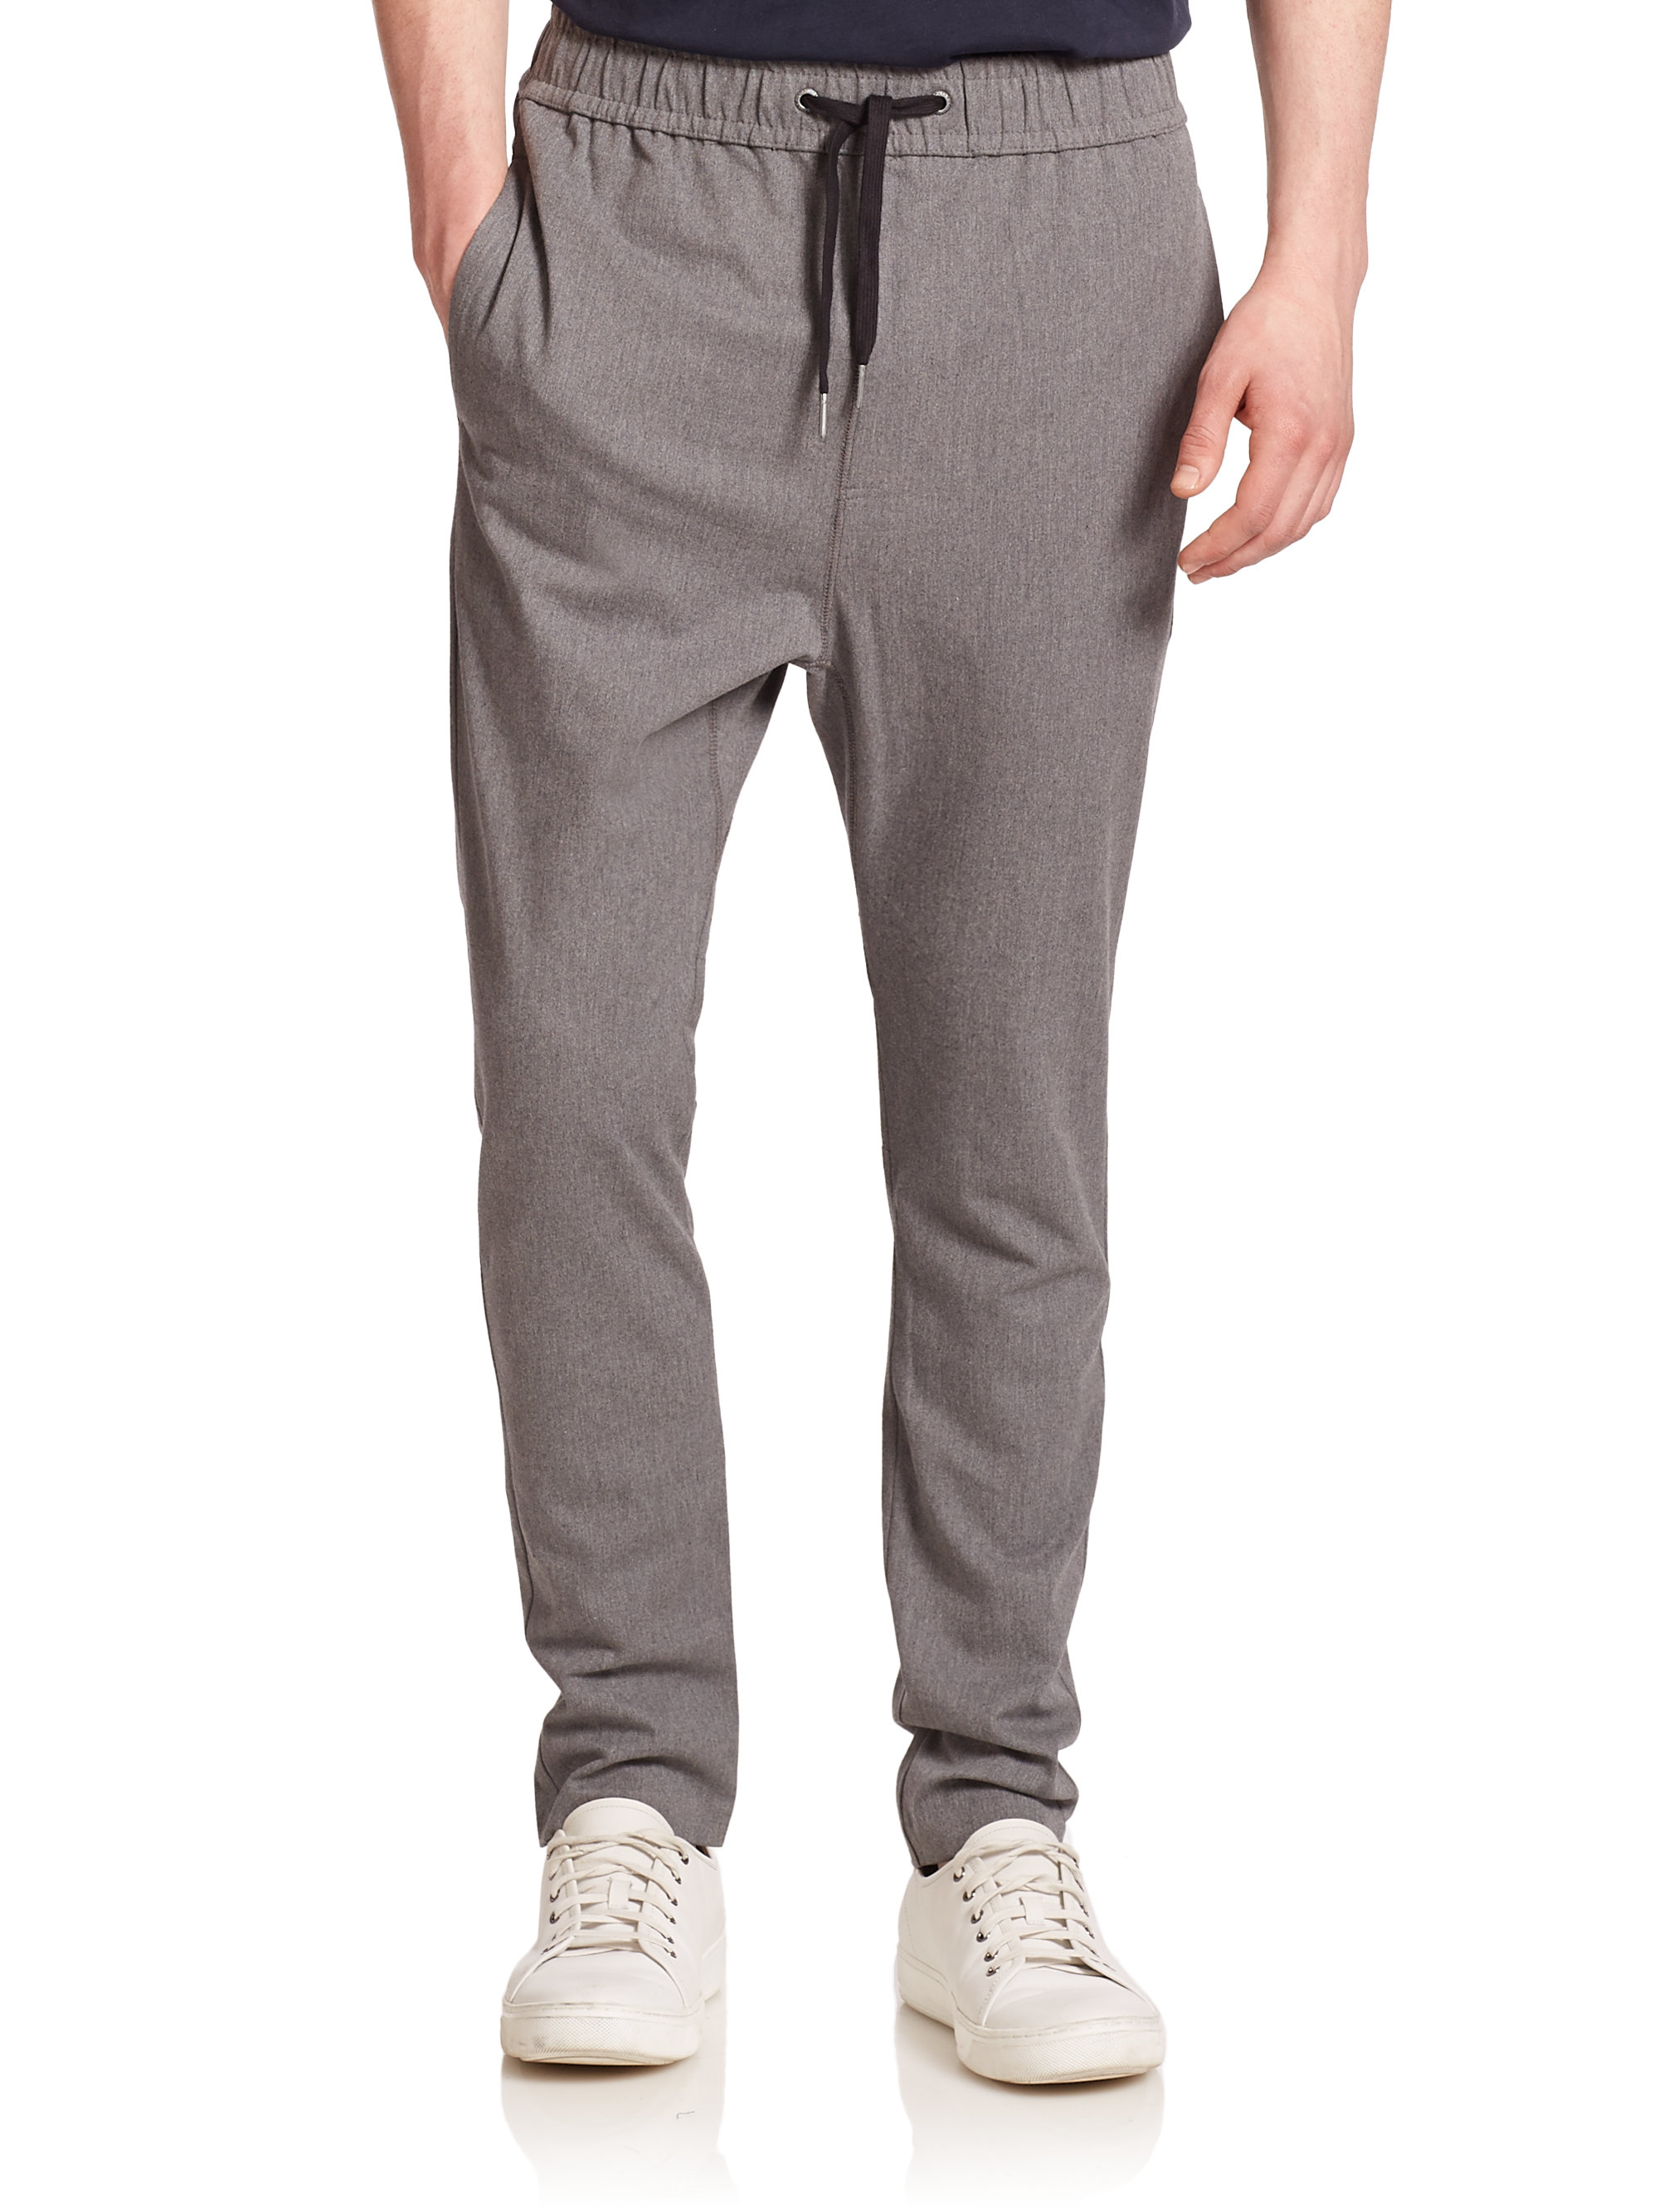 Lyst Zanerobe Stretch Cotton Drawstring Pants In Gray For Men